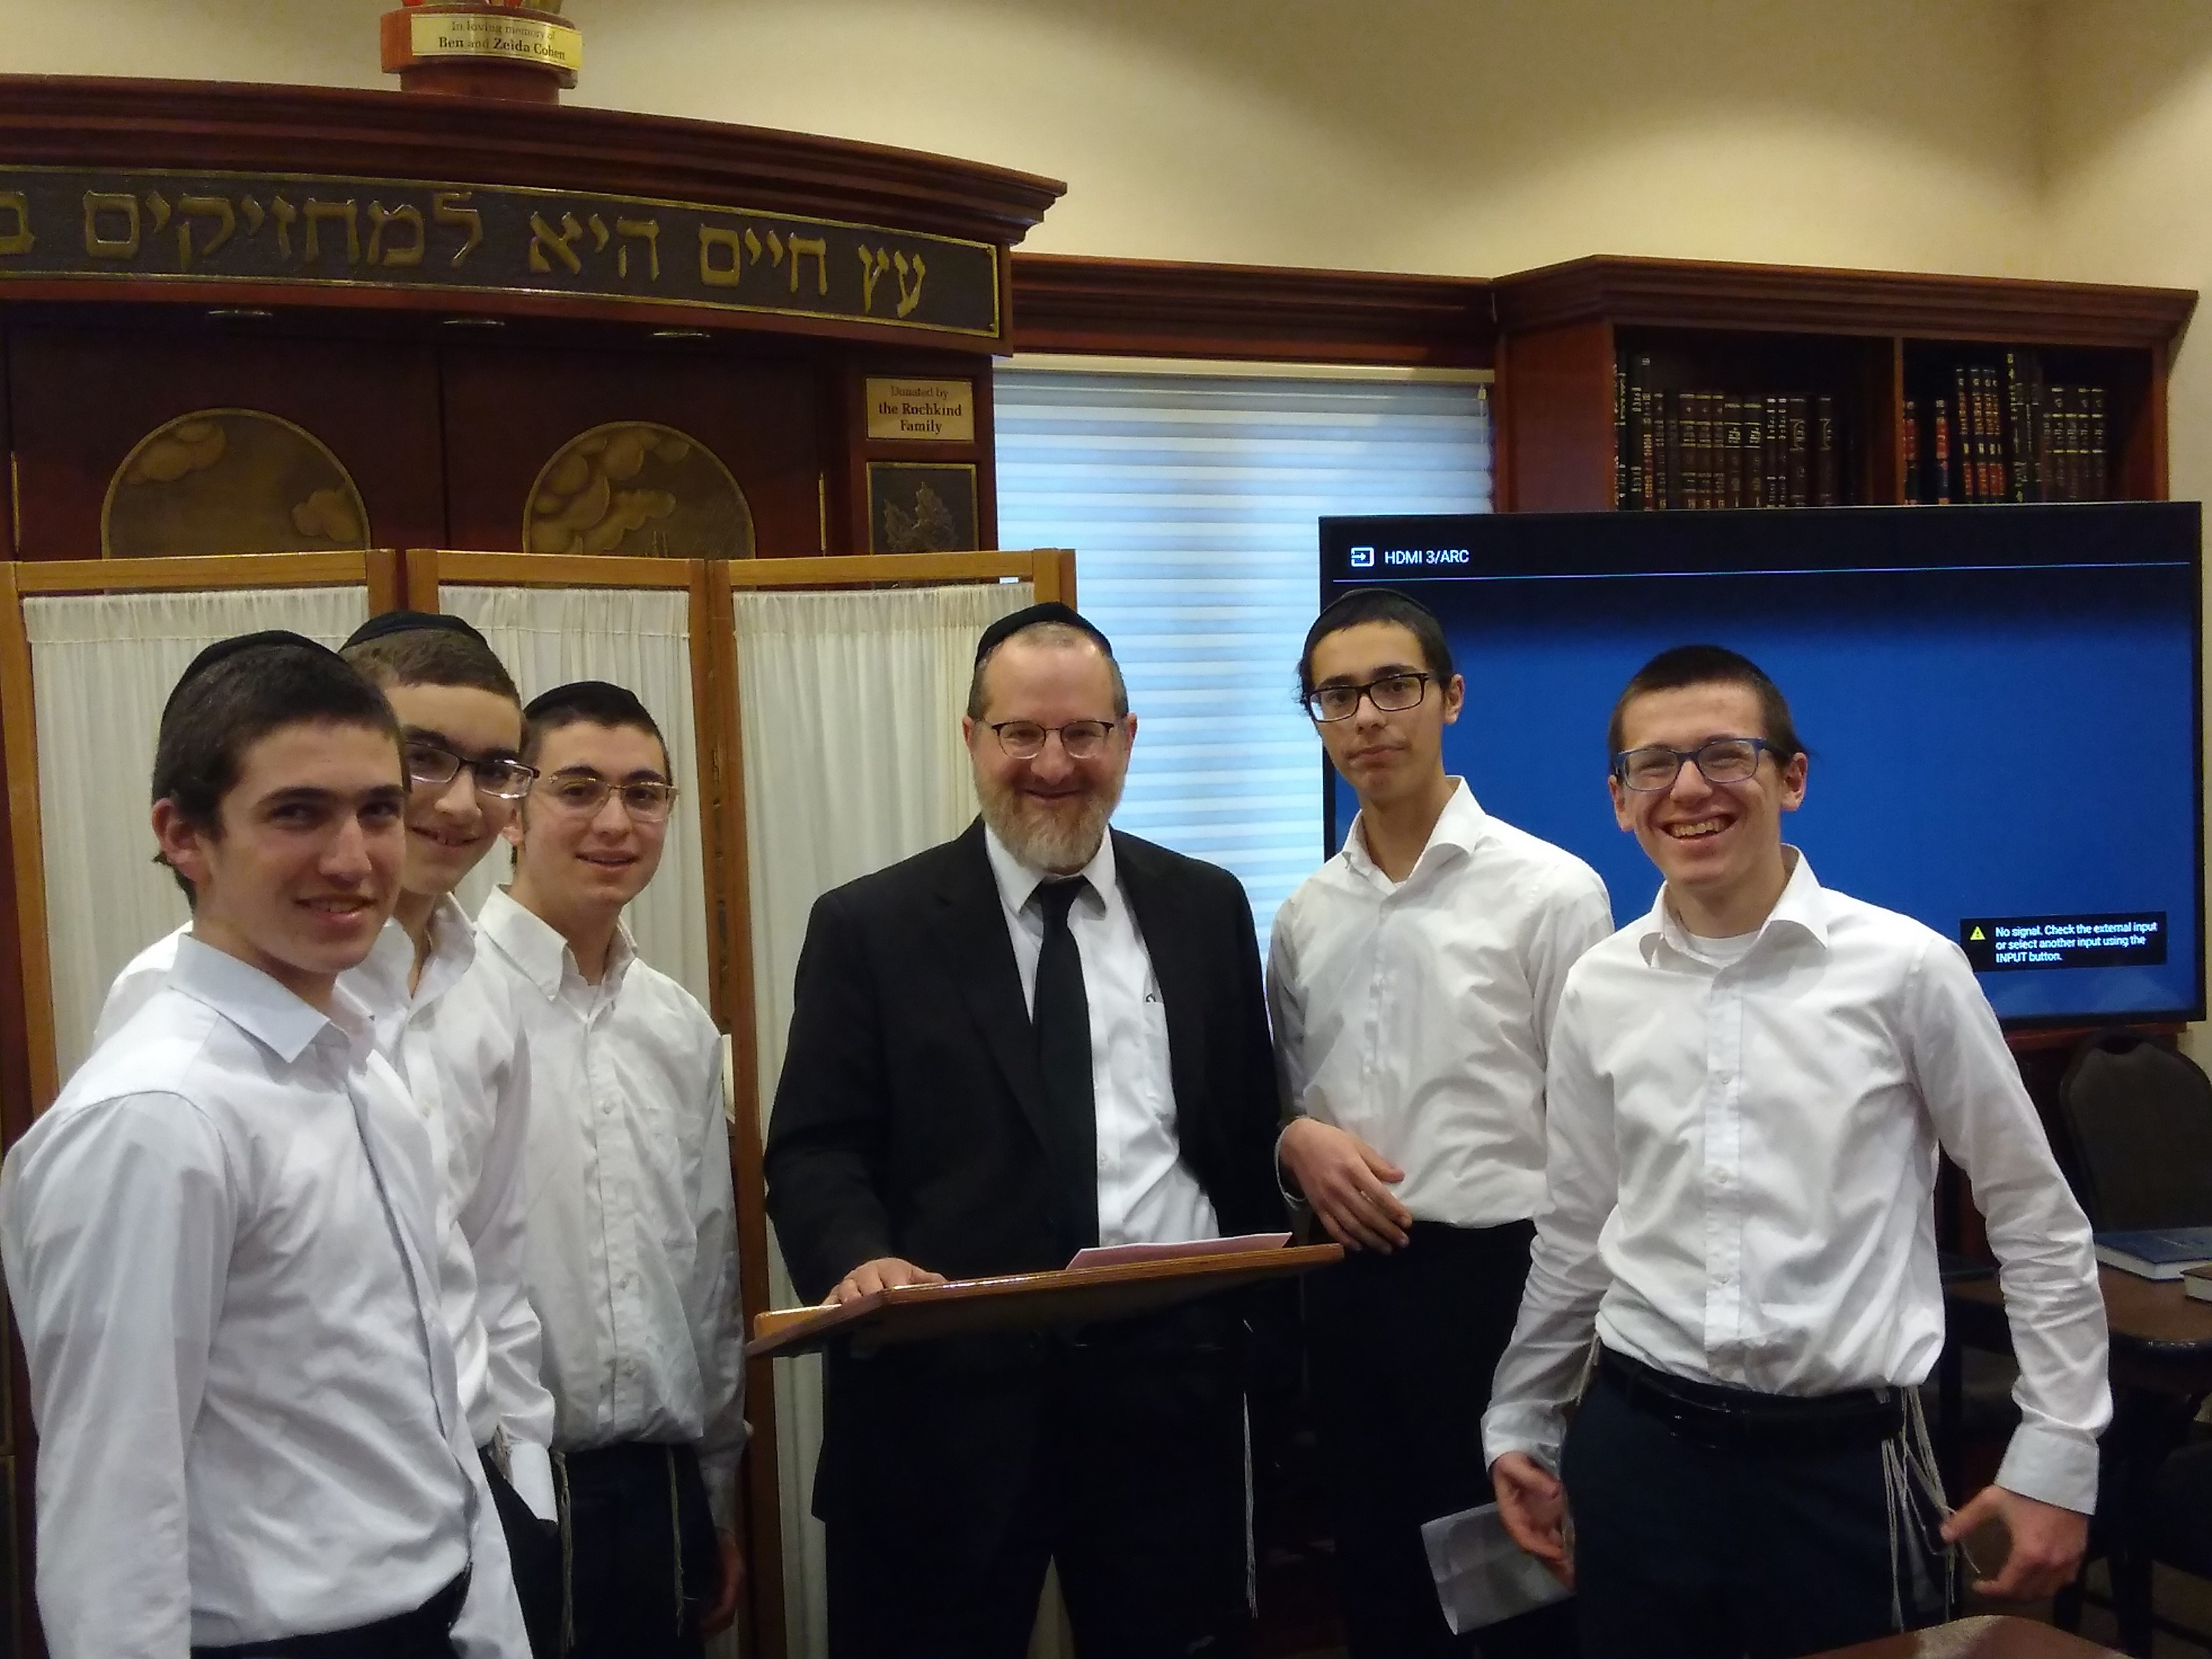 STAR-K Partners with Mesivta Kesser Torah to Bring Torah Learning to Life